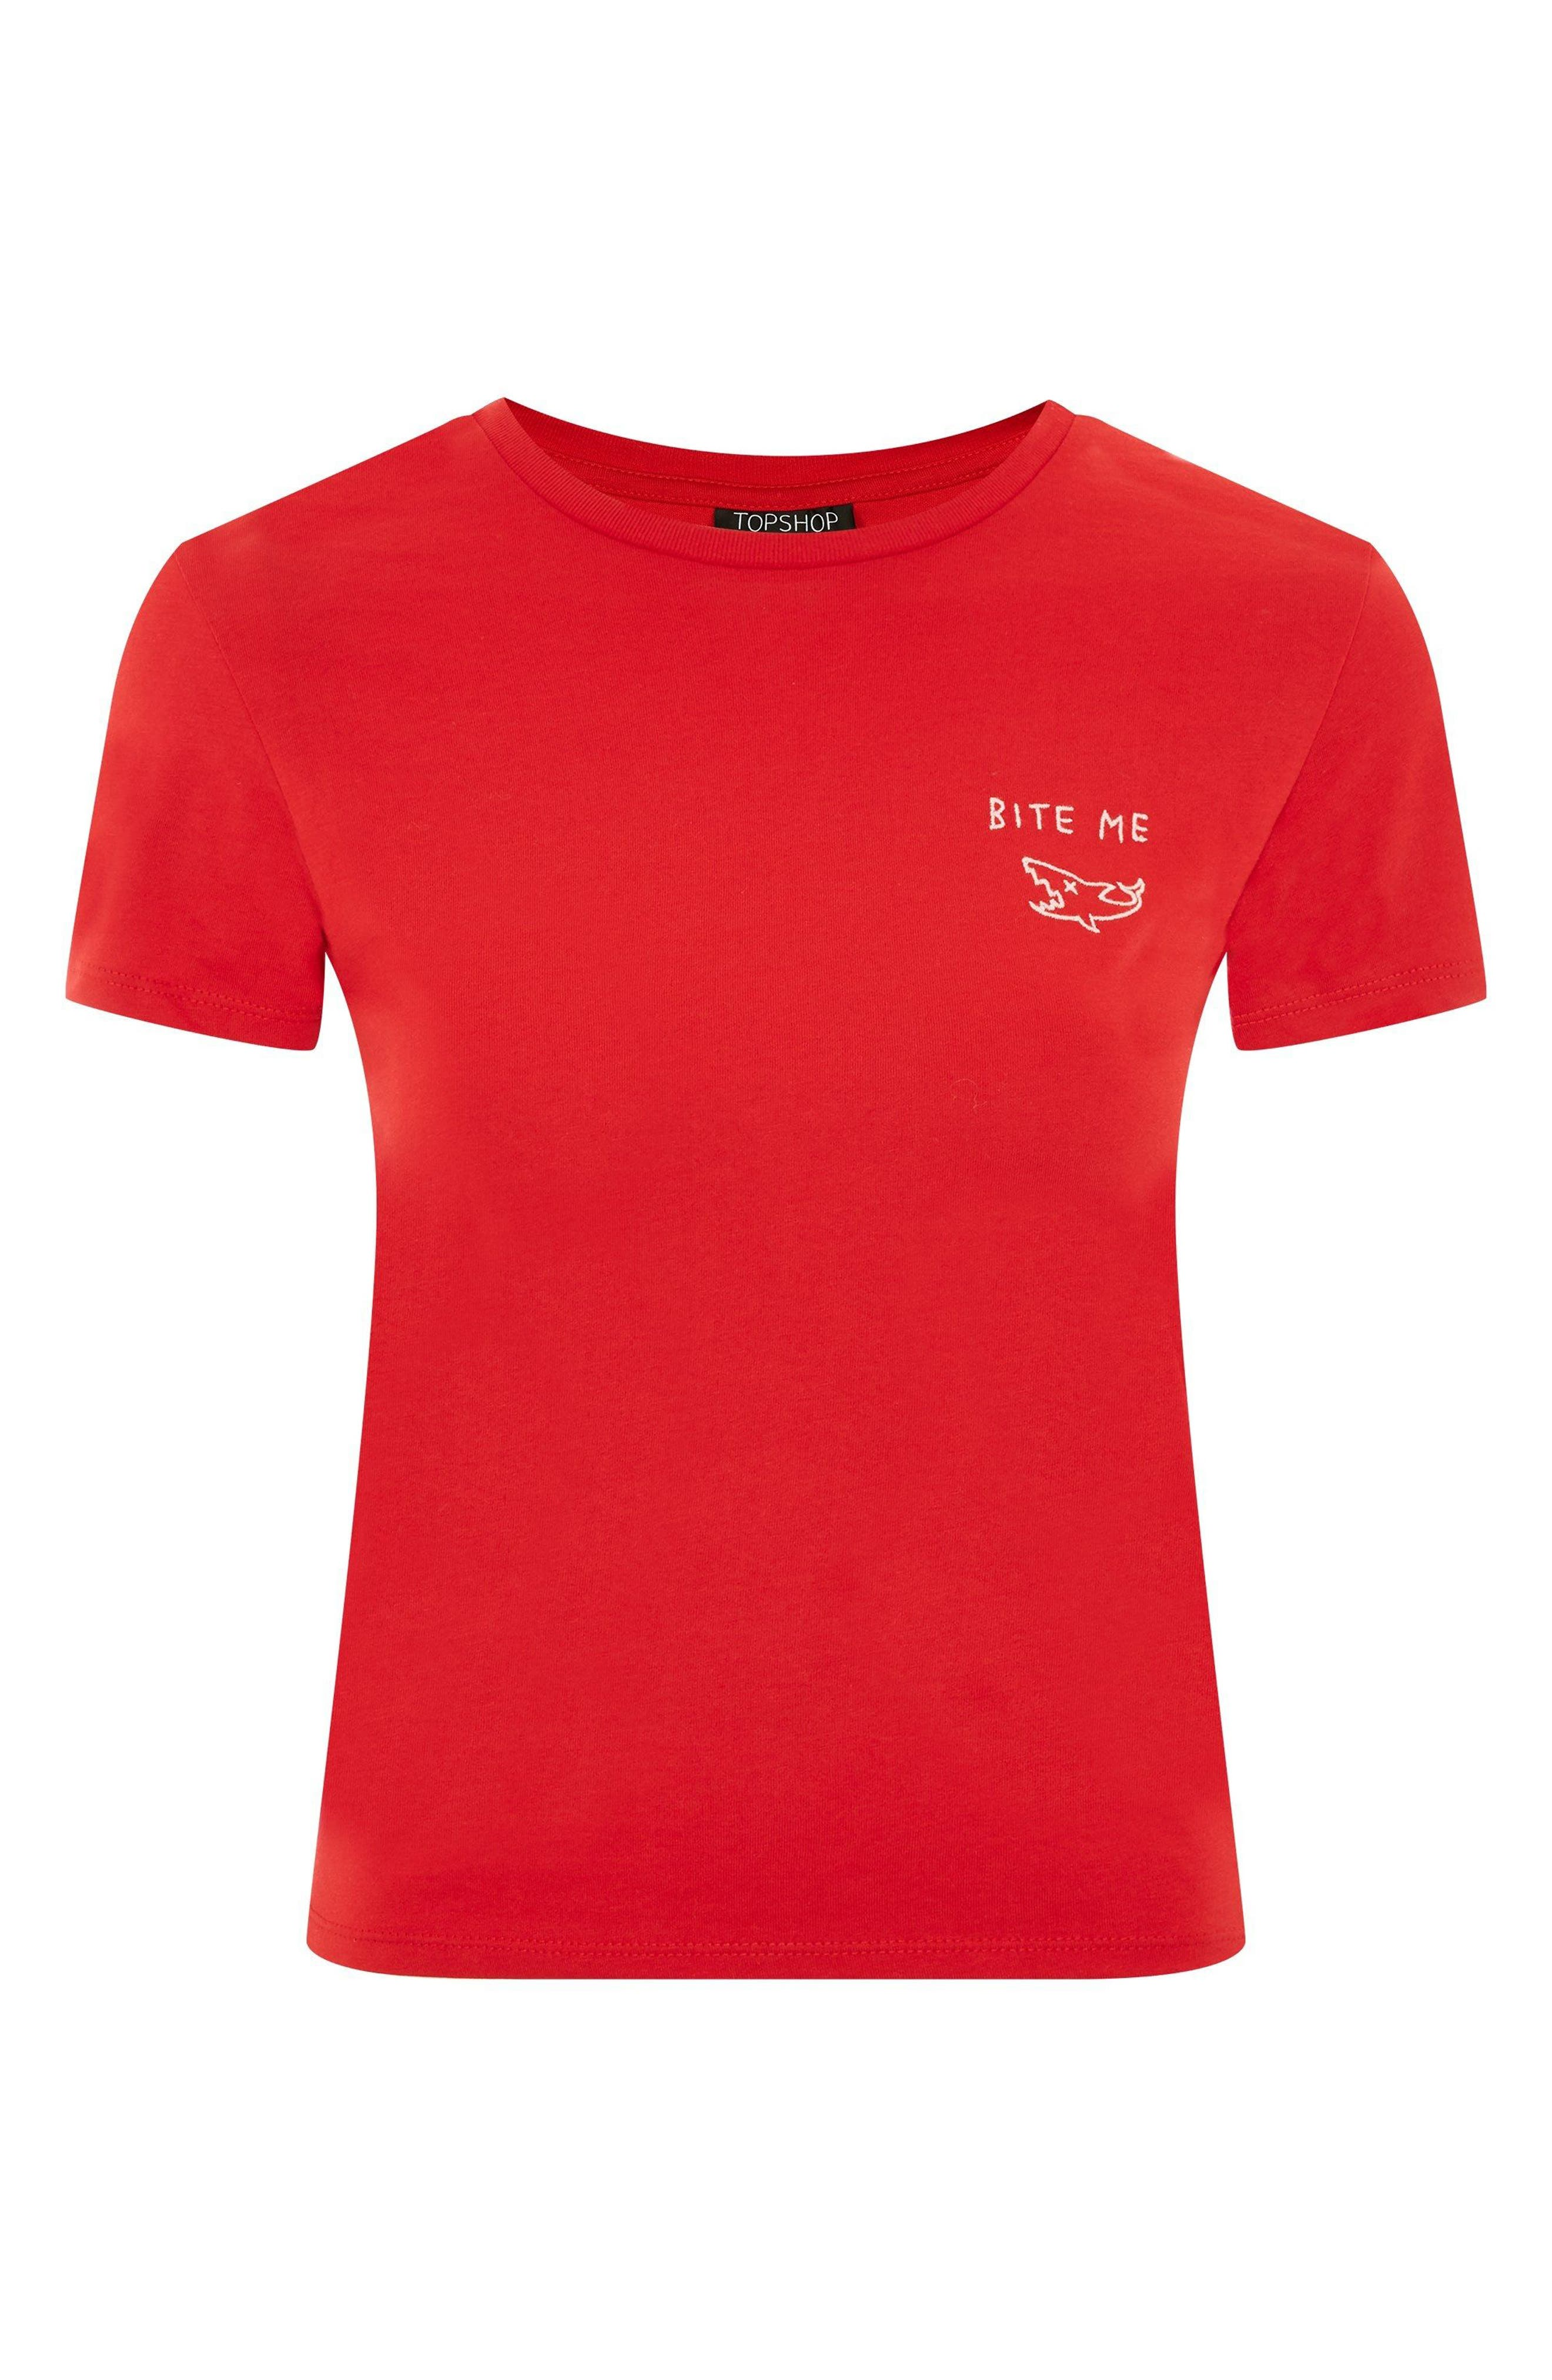 Bite Me Embroidered Tee,                             Alternate thumbnail 3, color,                             Red